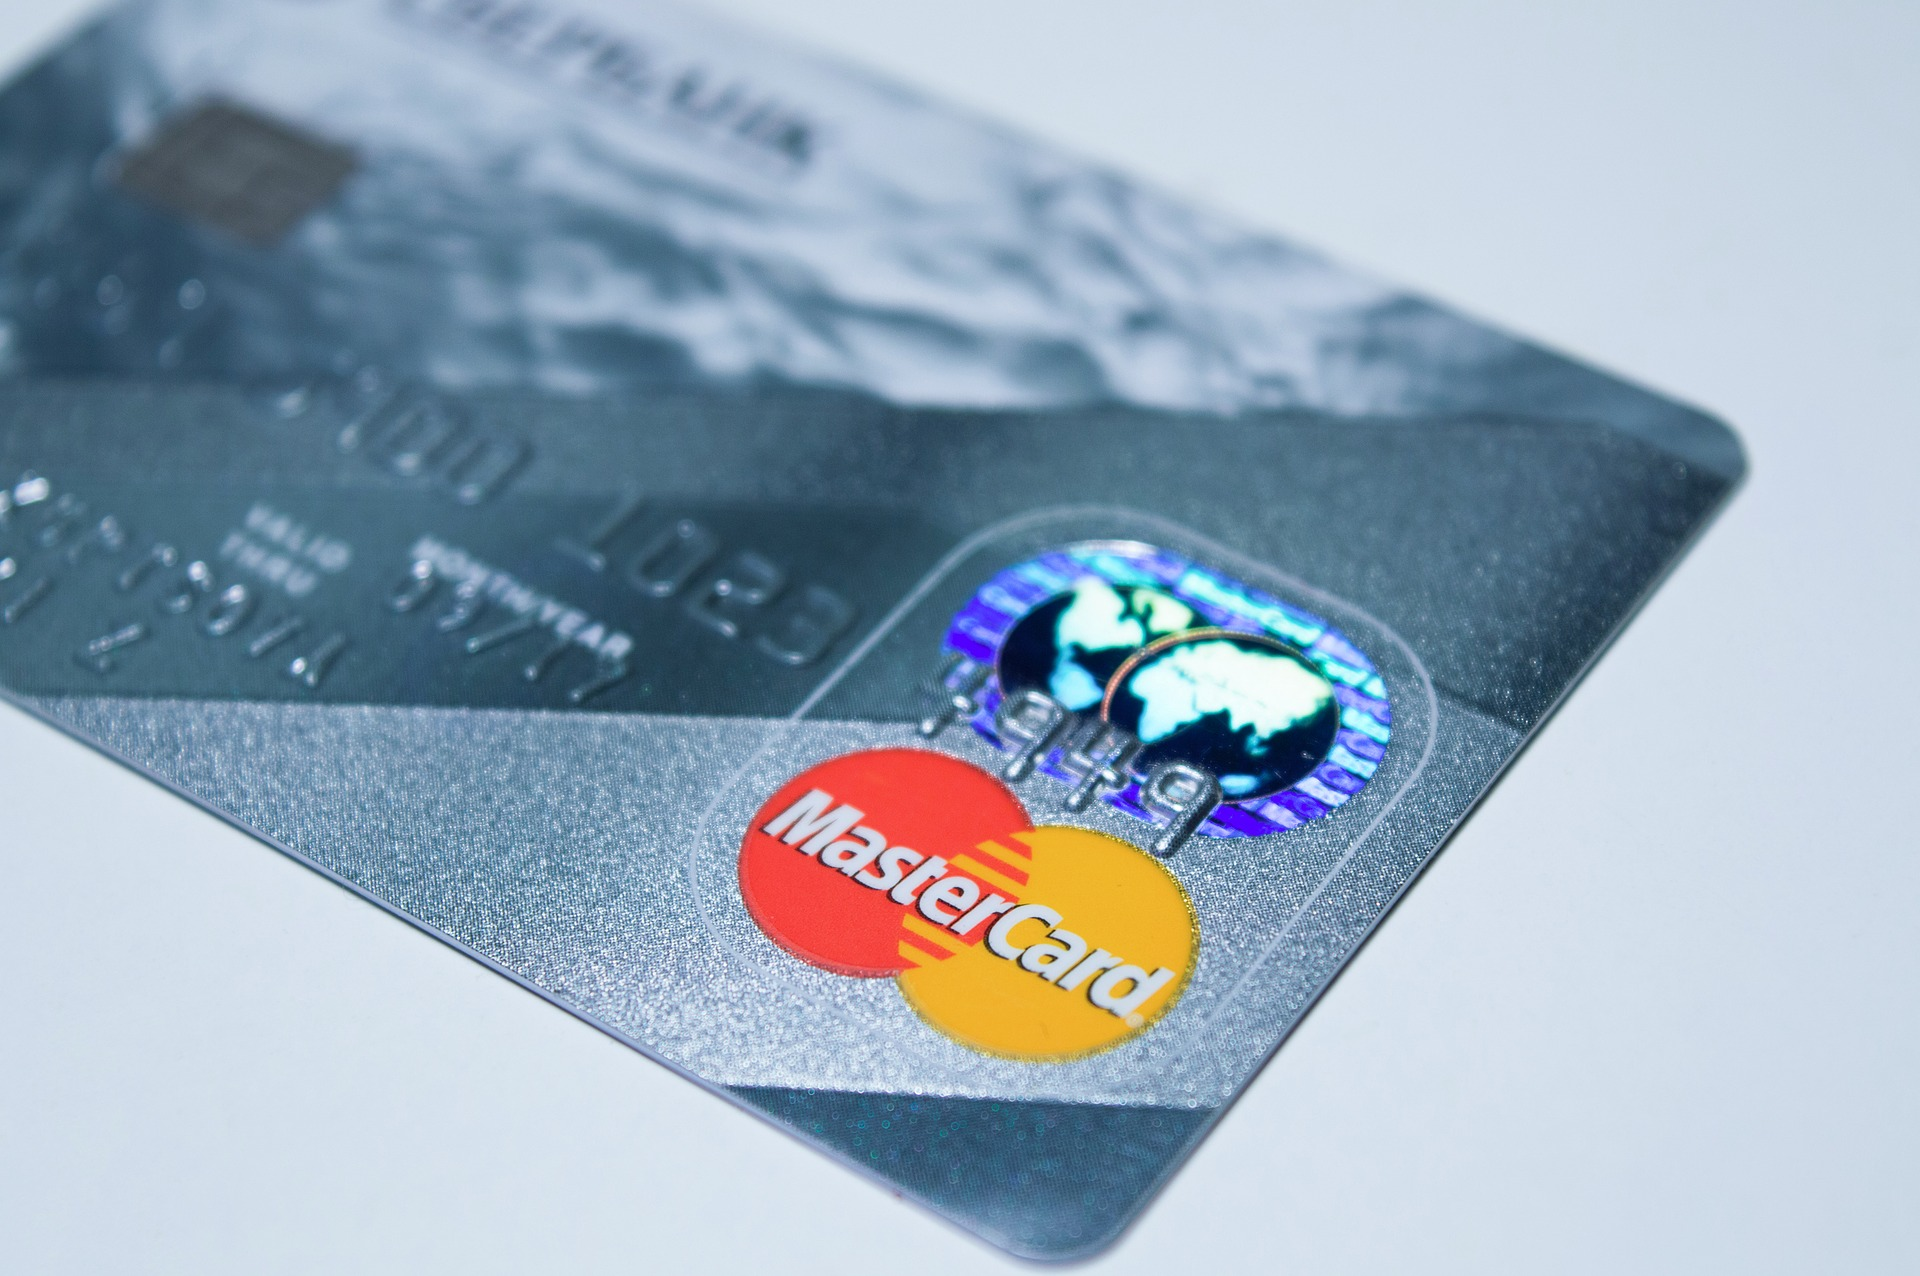 SBI Card Pay goes live for Mastercard credit cardholders